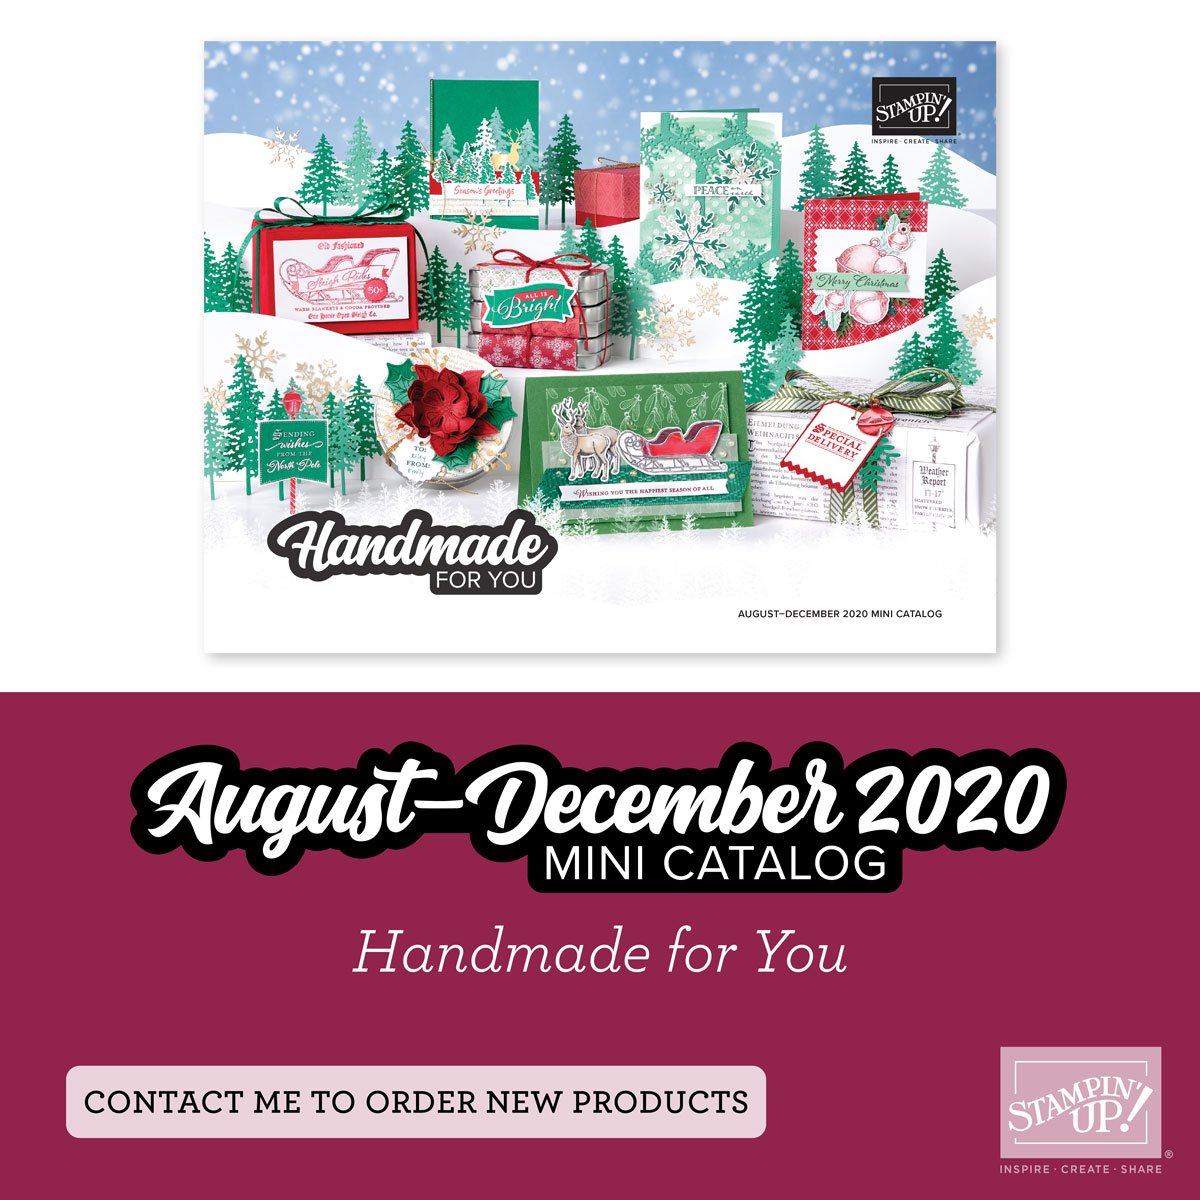 stampin up holiday catalog 2020 cover handmade for you august - december